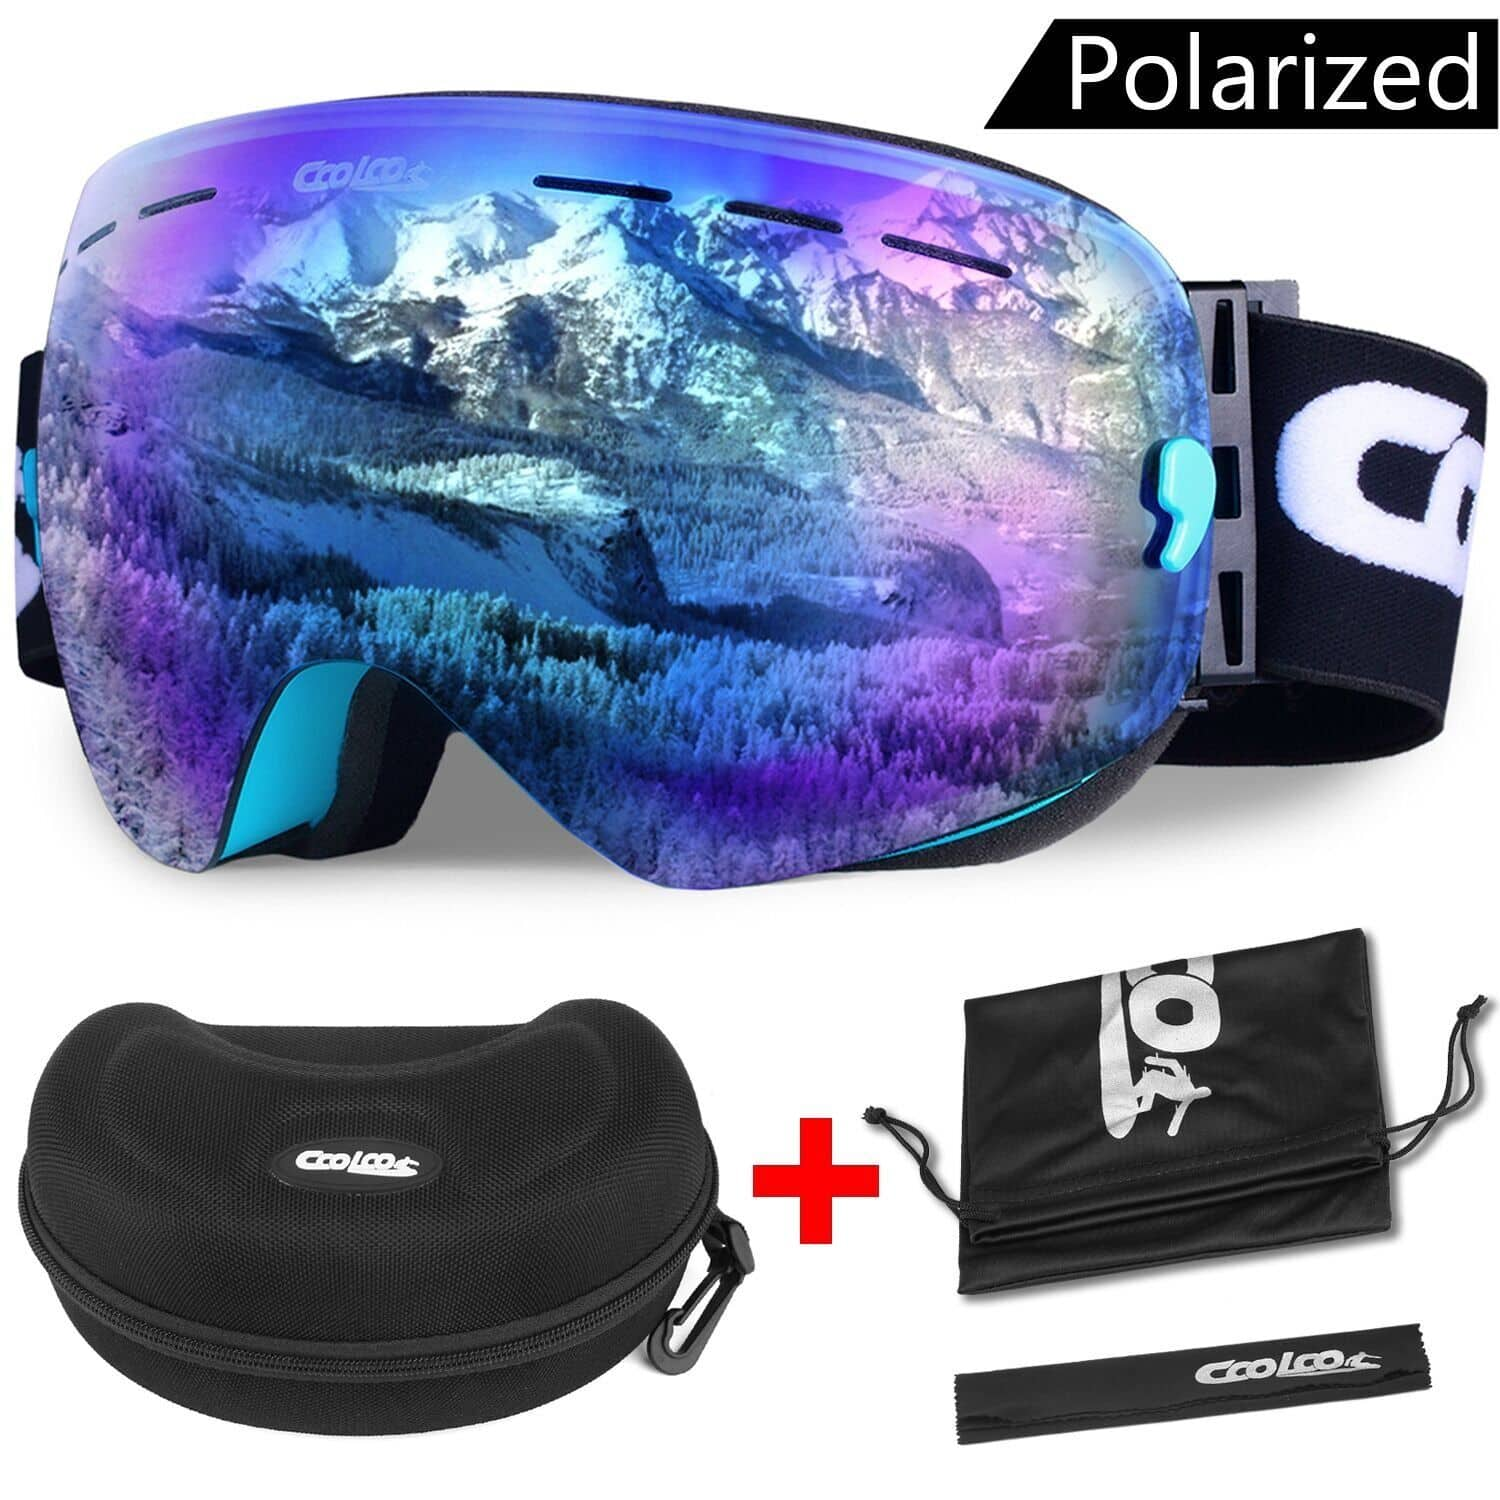 CooLoo Ski Goggles, Snowboard Helmet Dual Panoramic Lens $13.5 Clearance Sale + Free Shipping @Amazon